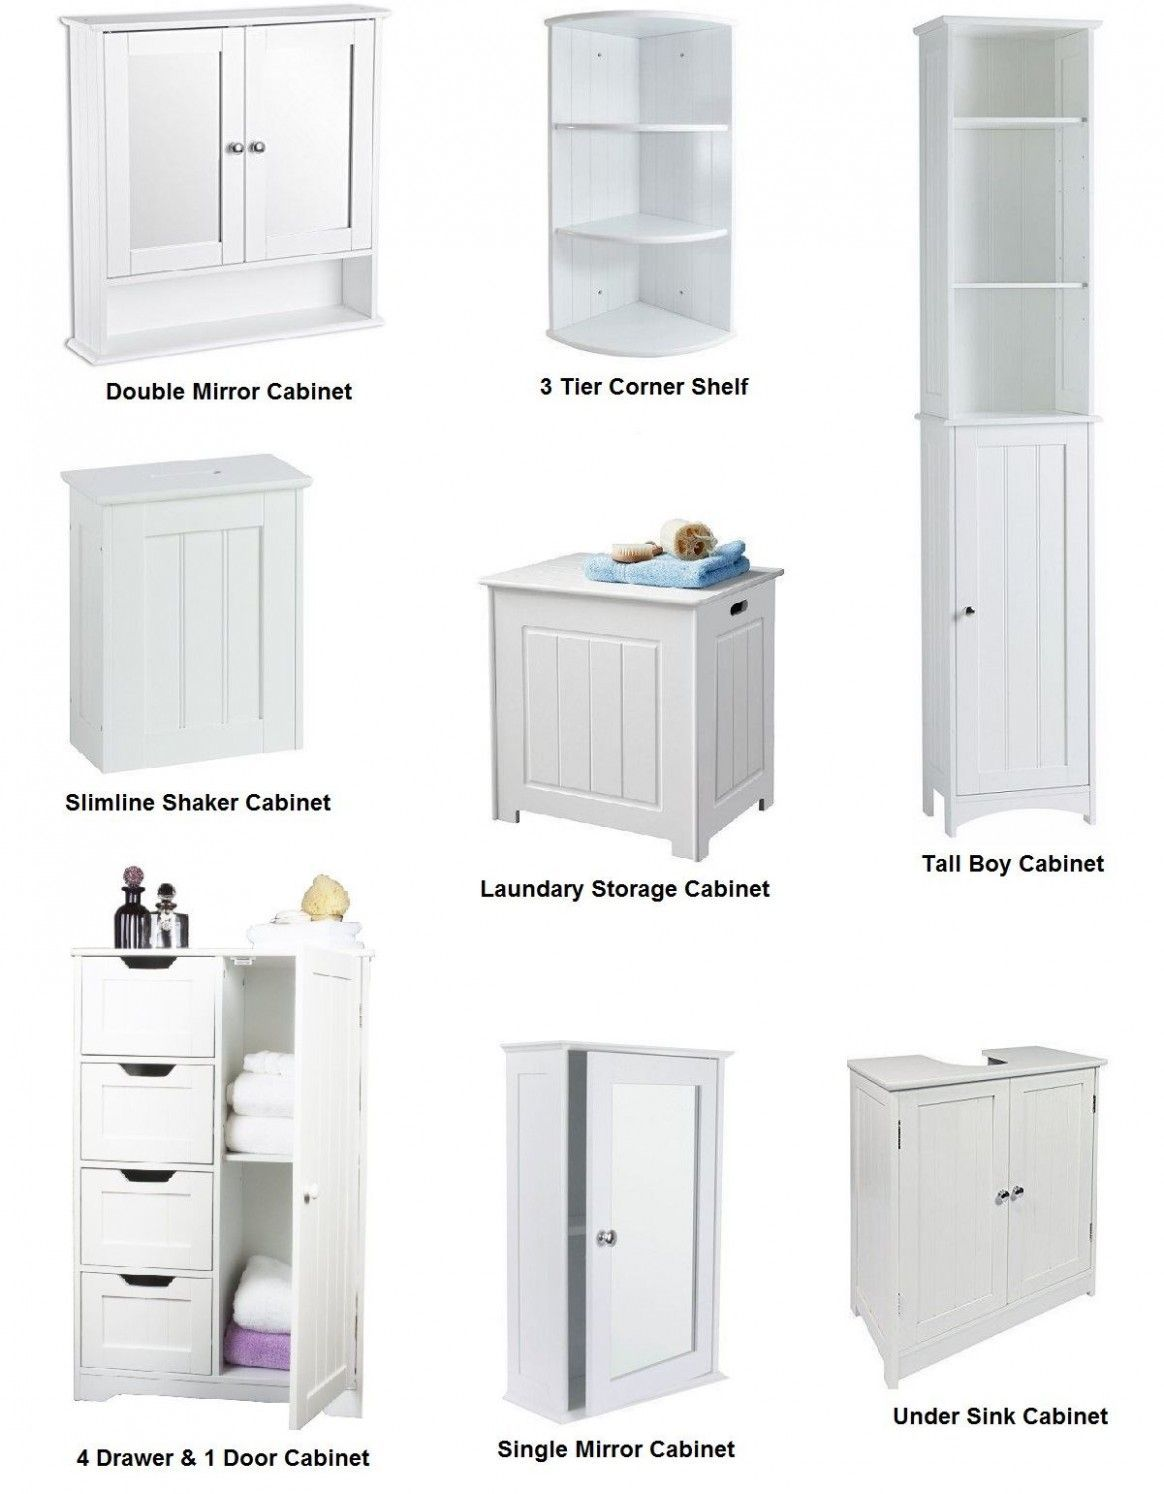 Tall Bedroom Storage Units Tall Bedroom Storage Units As Accession Who S Lived In One Accommod In 2020 Wooden Bathroom Cabinets Bathroom Storage Units Bedroom Storage